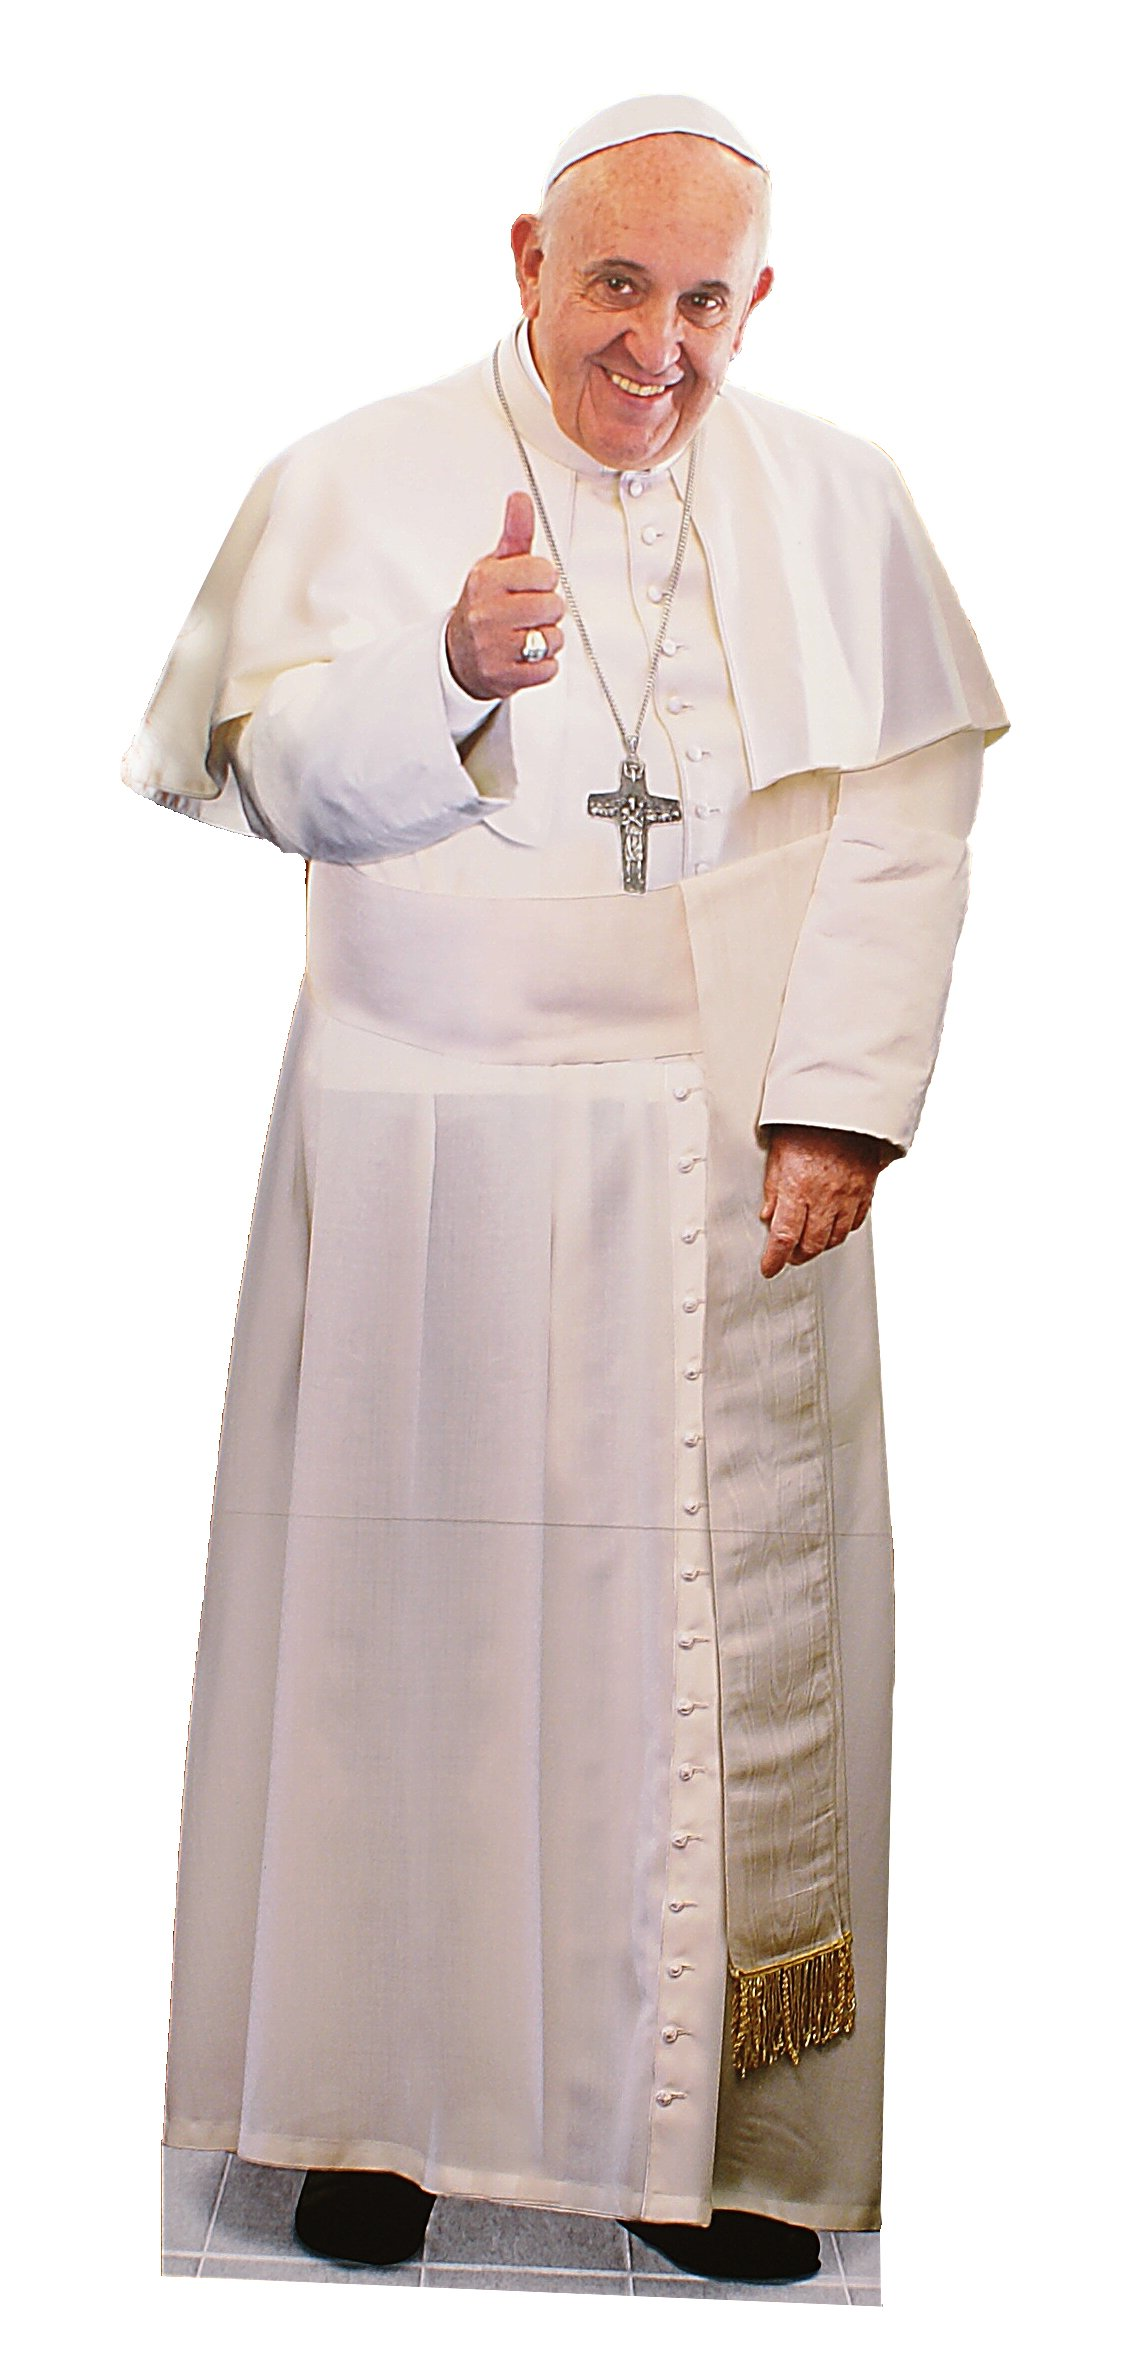 Pope Francis Thumps Up Lifesize Cutout Standee by Catholic to the Max